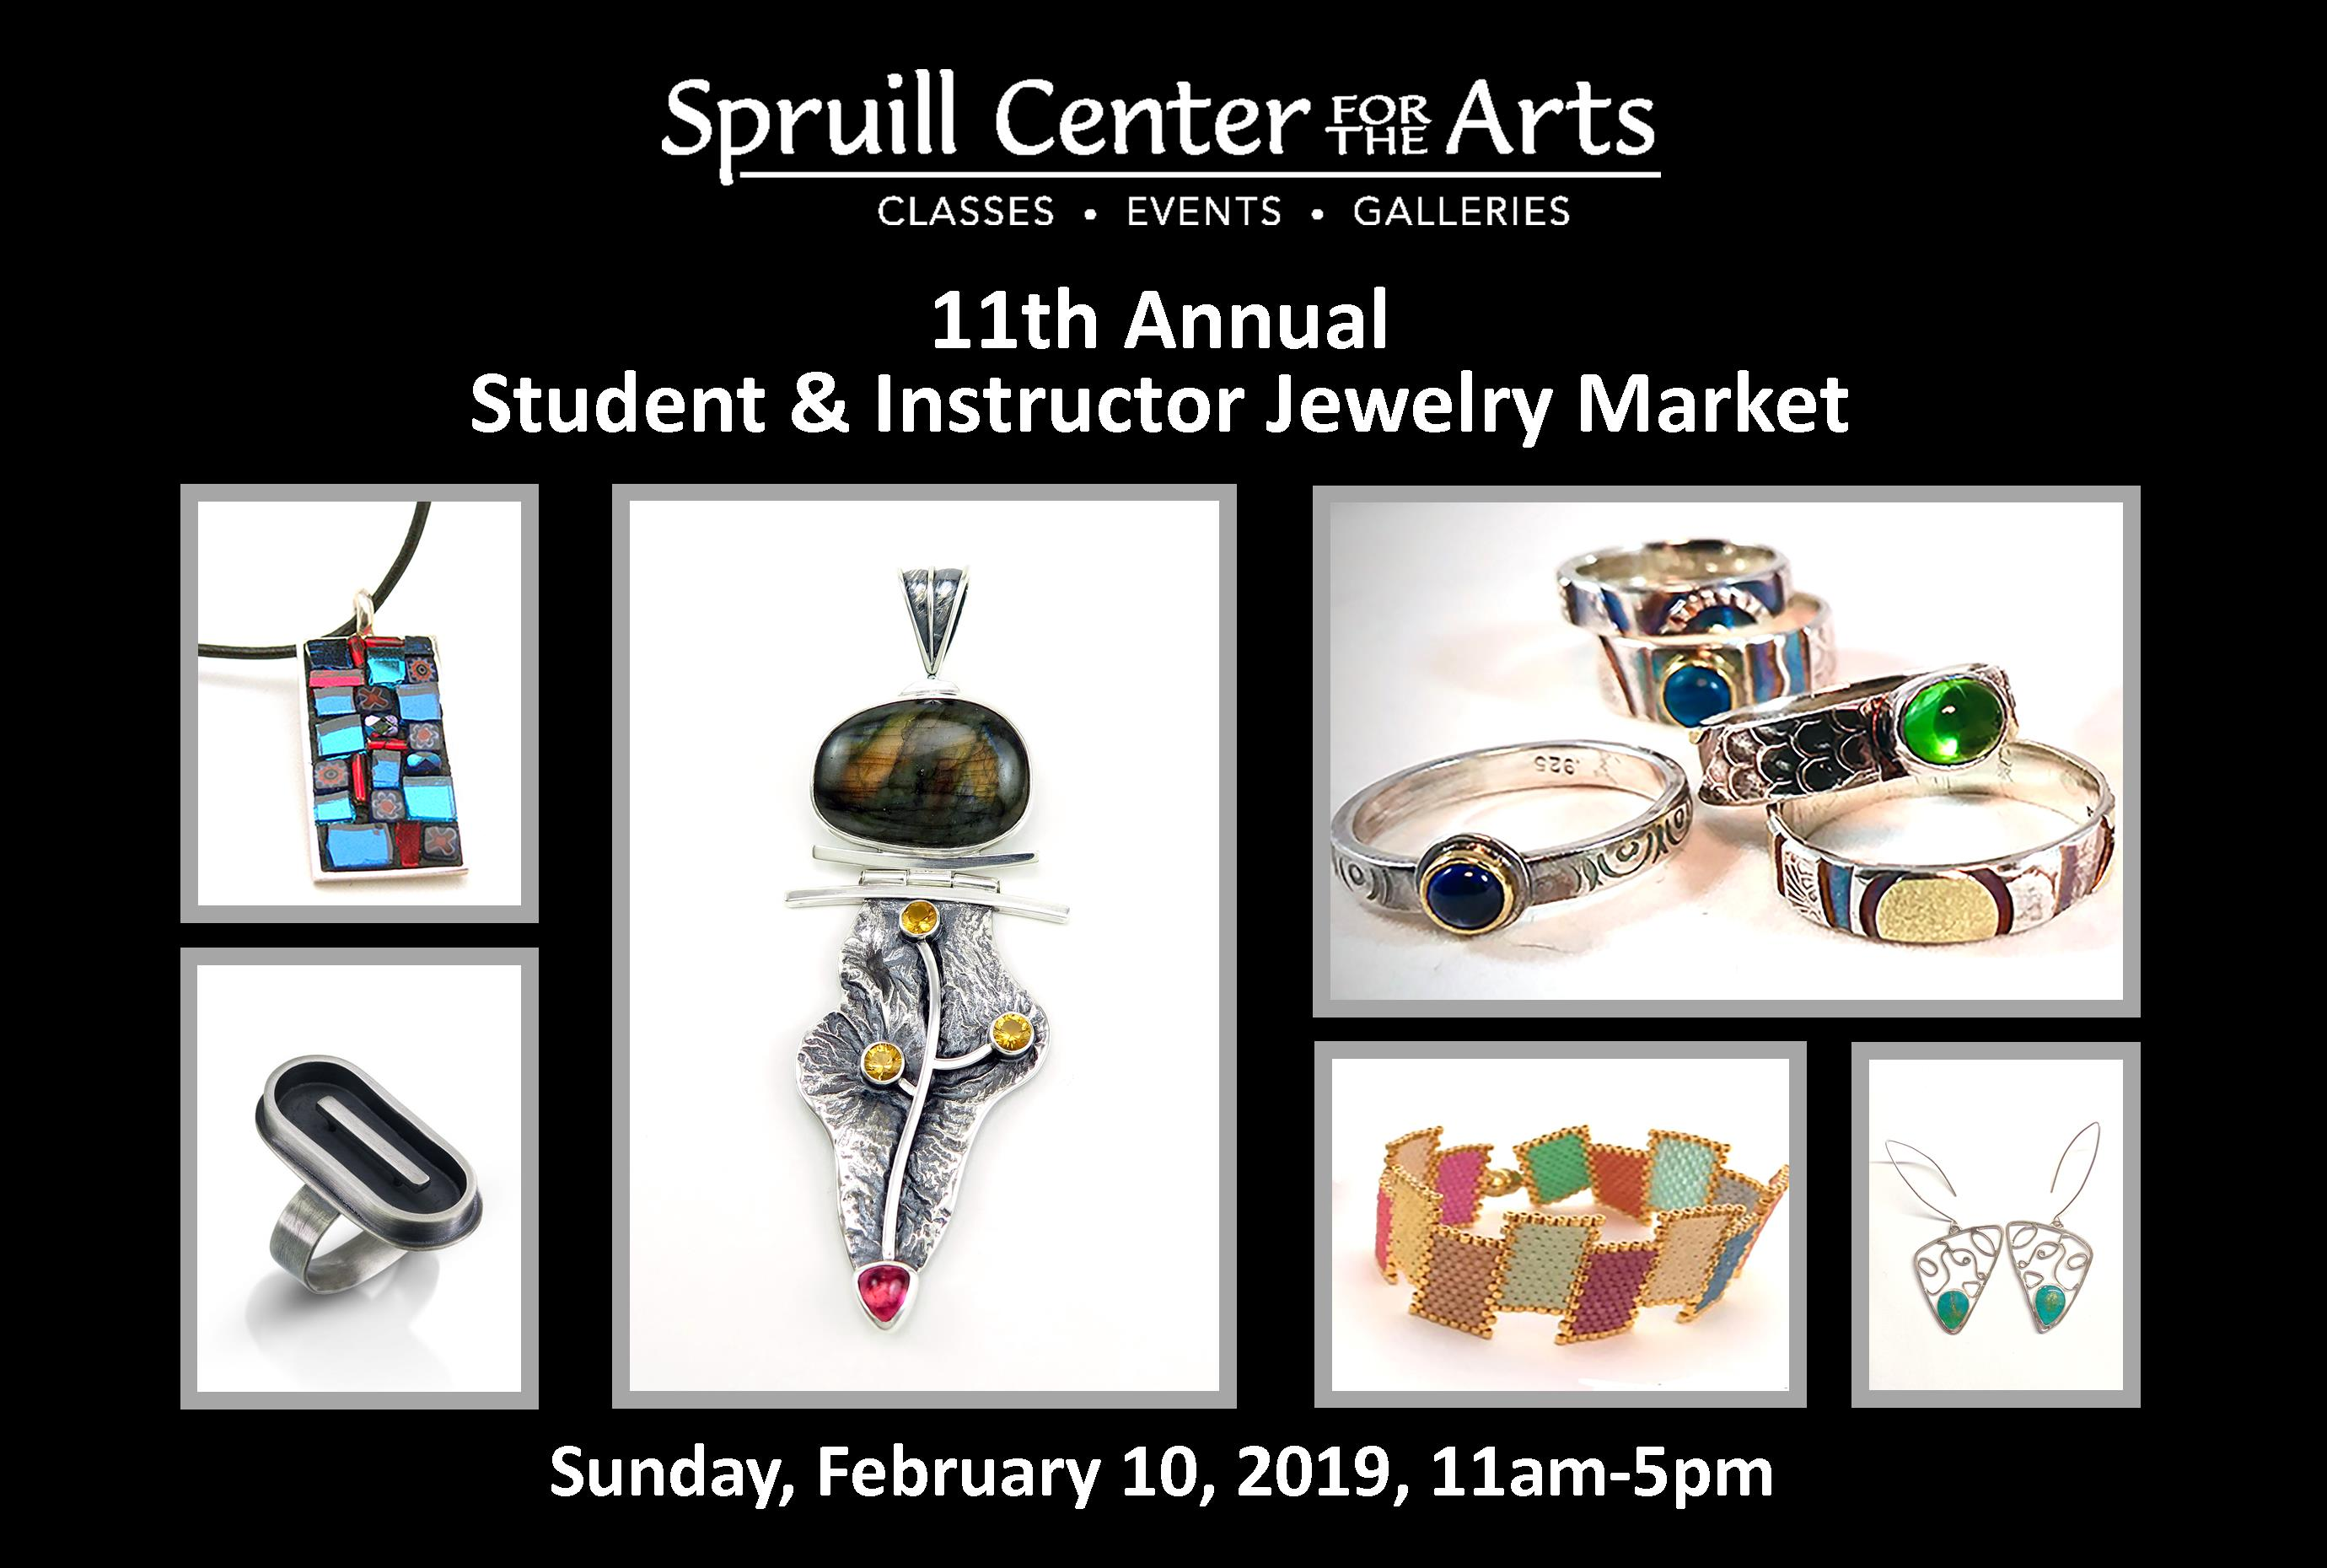 11th Annual Jewelry Market